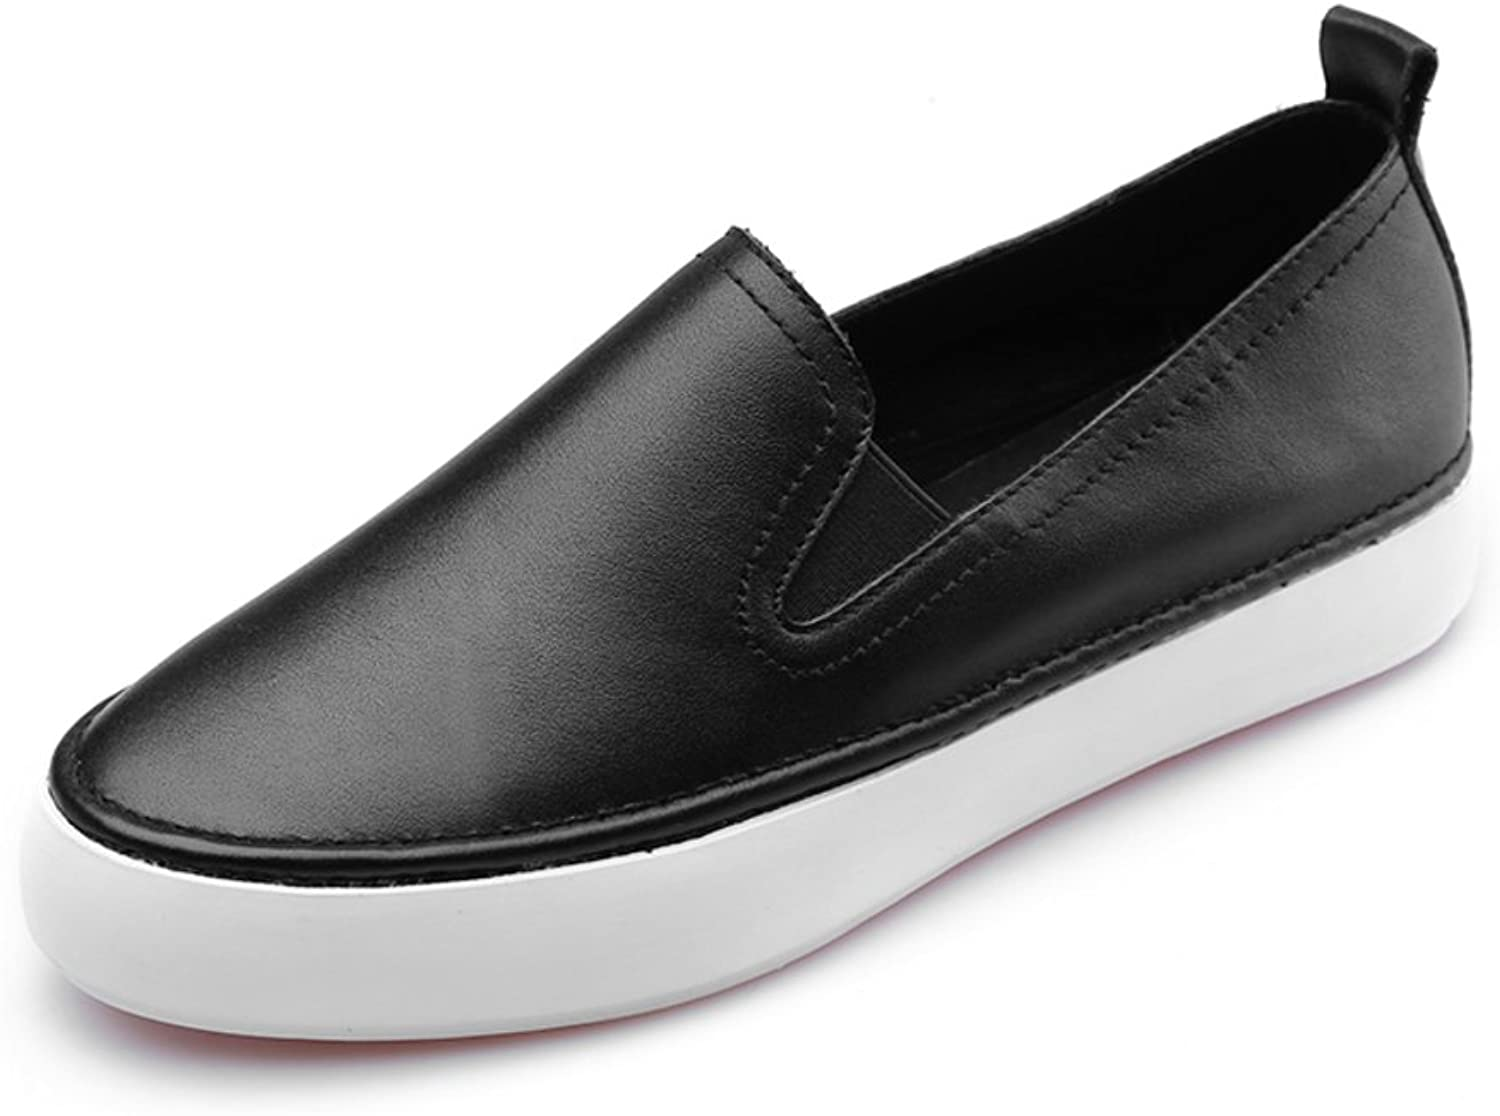 Huhuj Full Leather Loafers Pig Lippi Breathable shoes Set Foot Slip-on shoes Leather Casual Flat White shoes